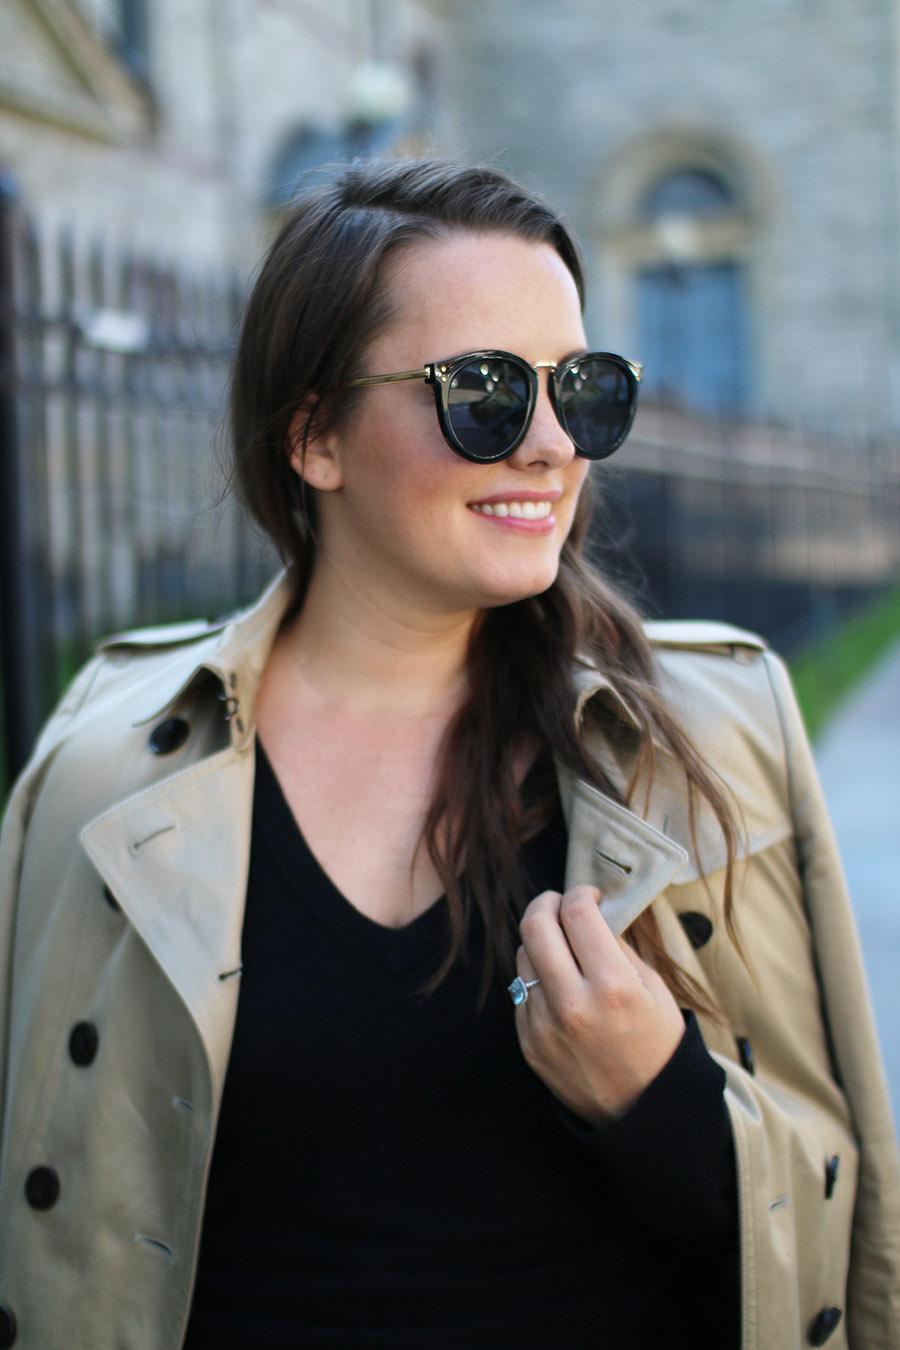 wardrobe-staples-trench-coat-black-sunglasses